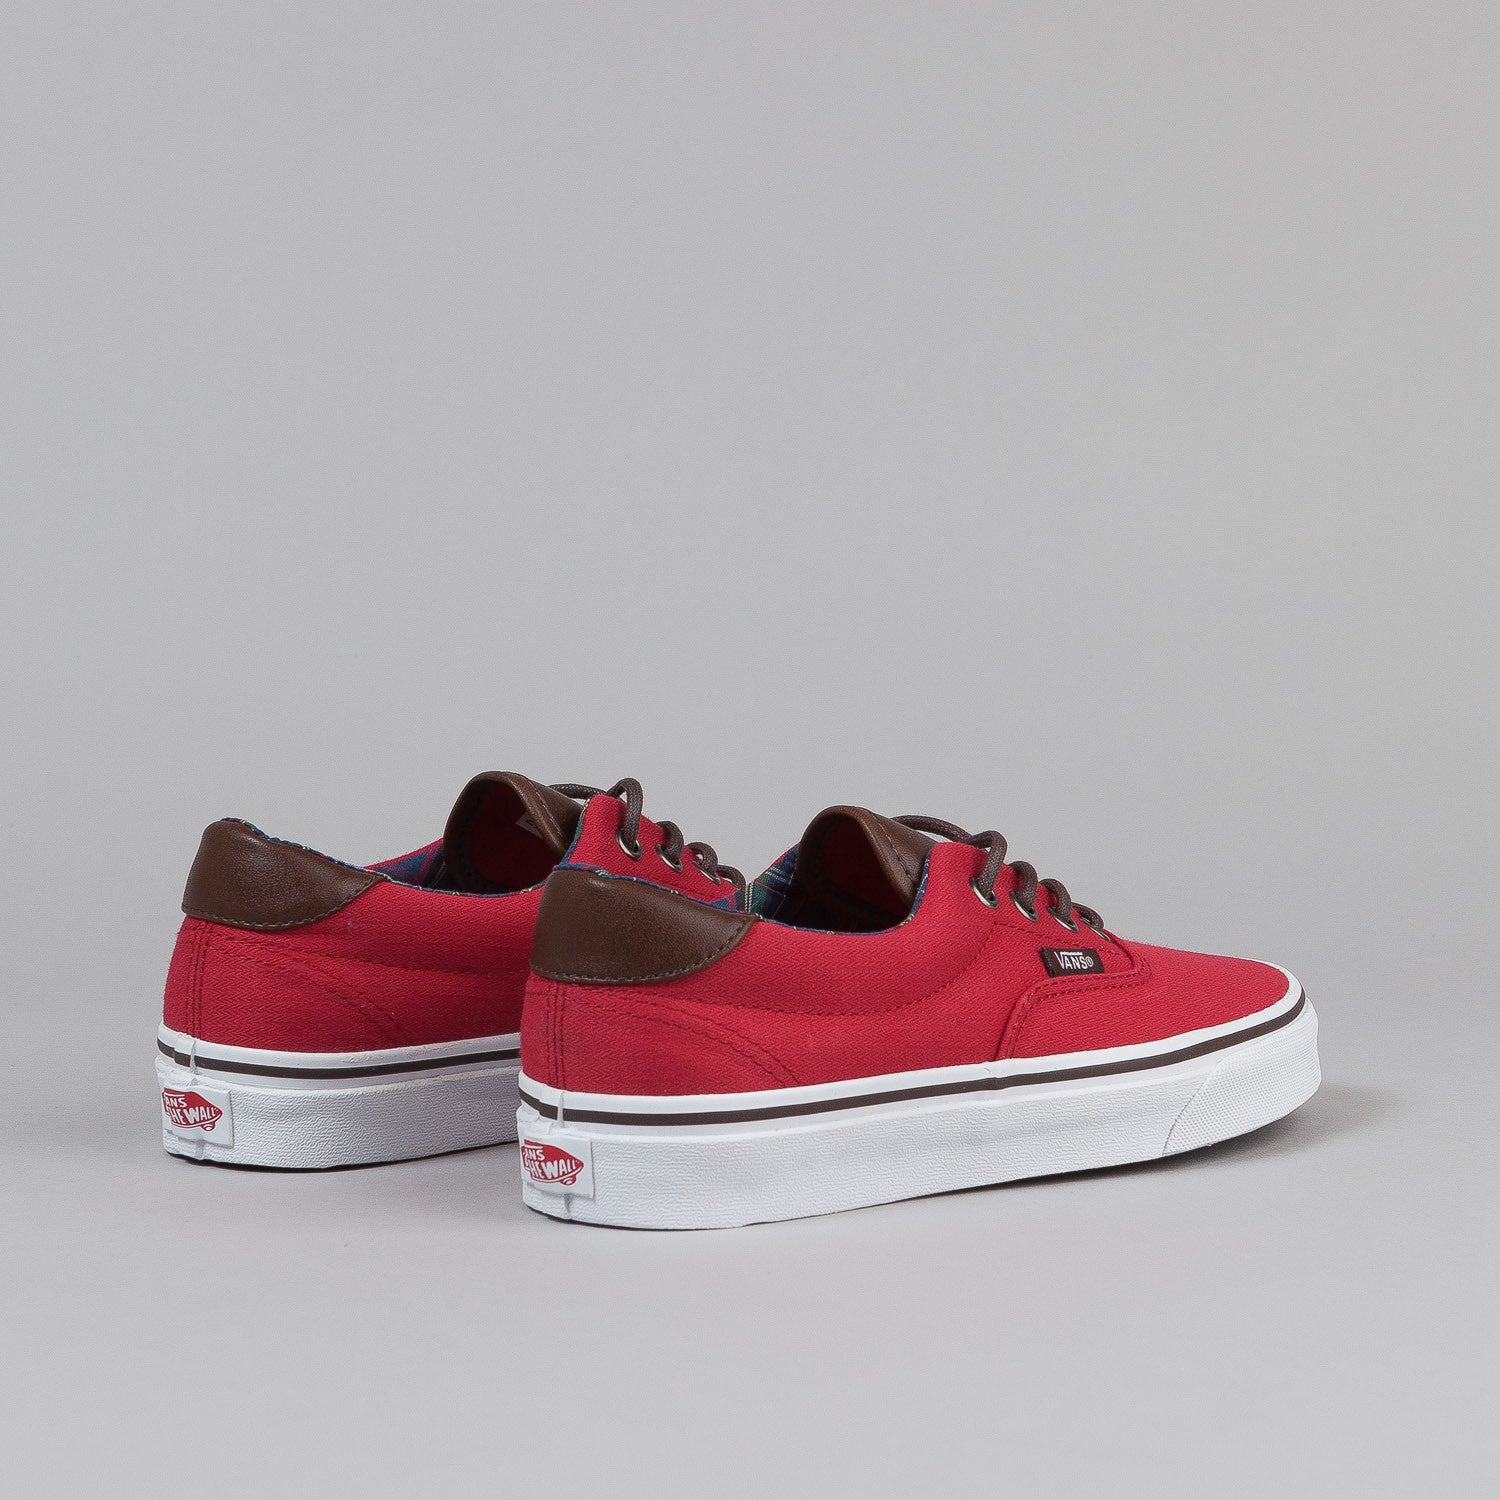 Vans Era Shoes - Chilli Pepper